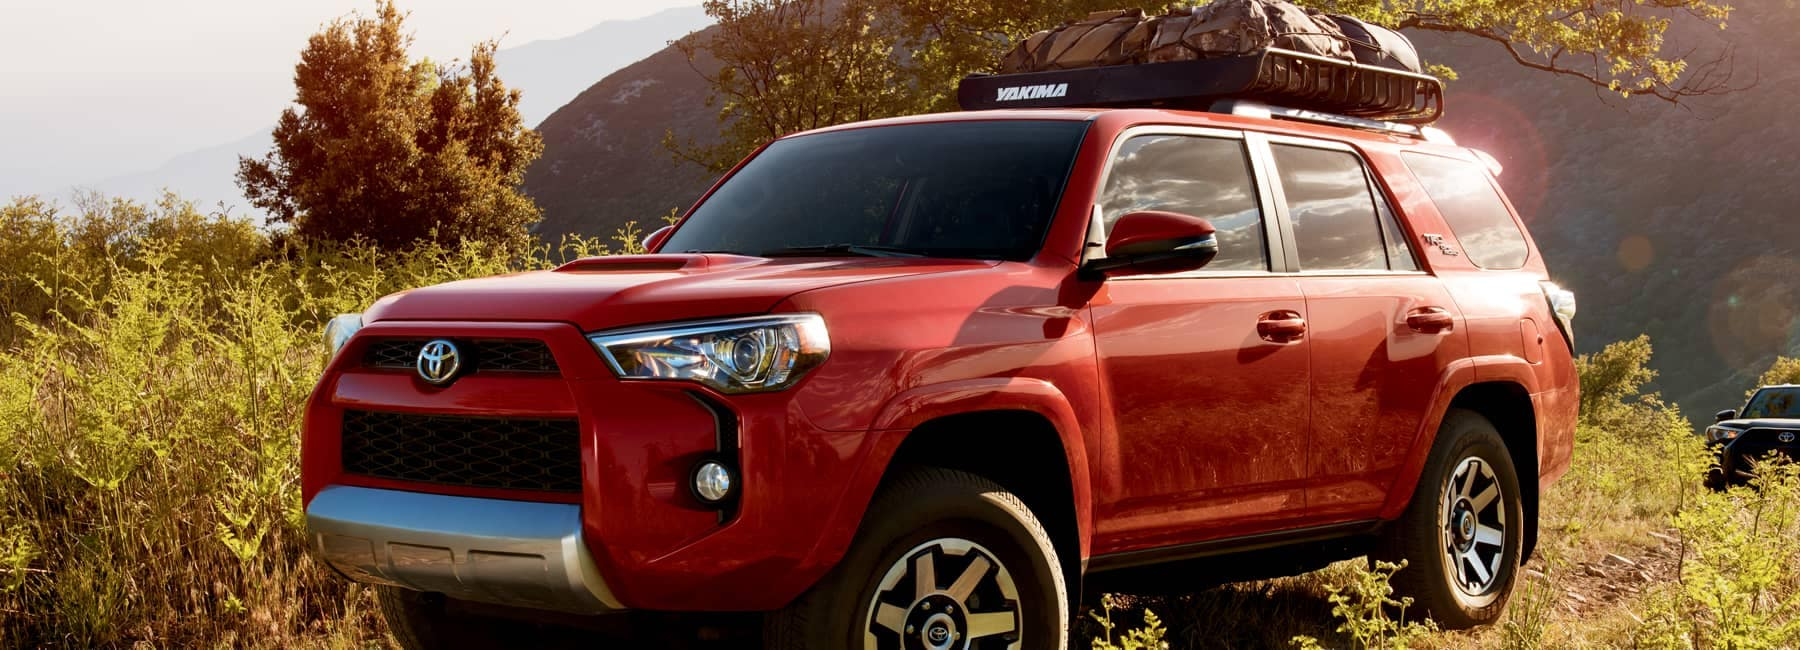 Research your local Toyota dealership in North Kingstown RI